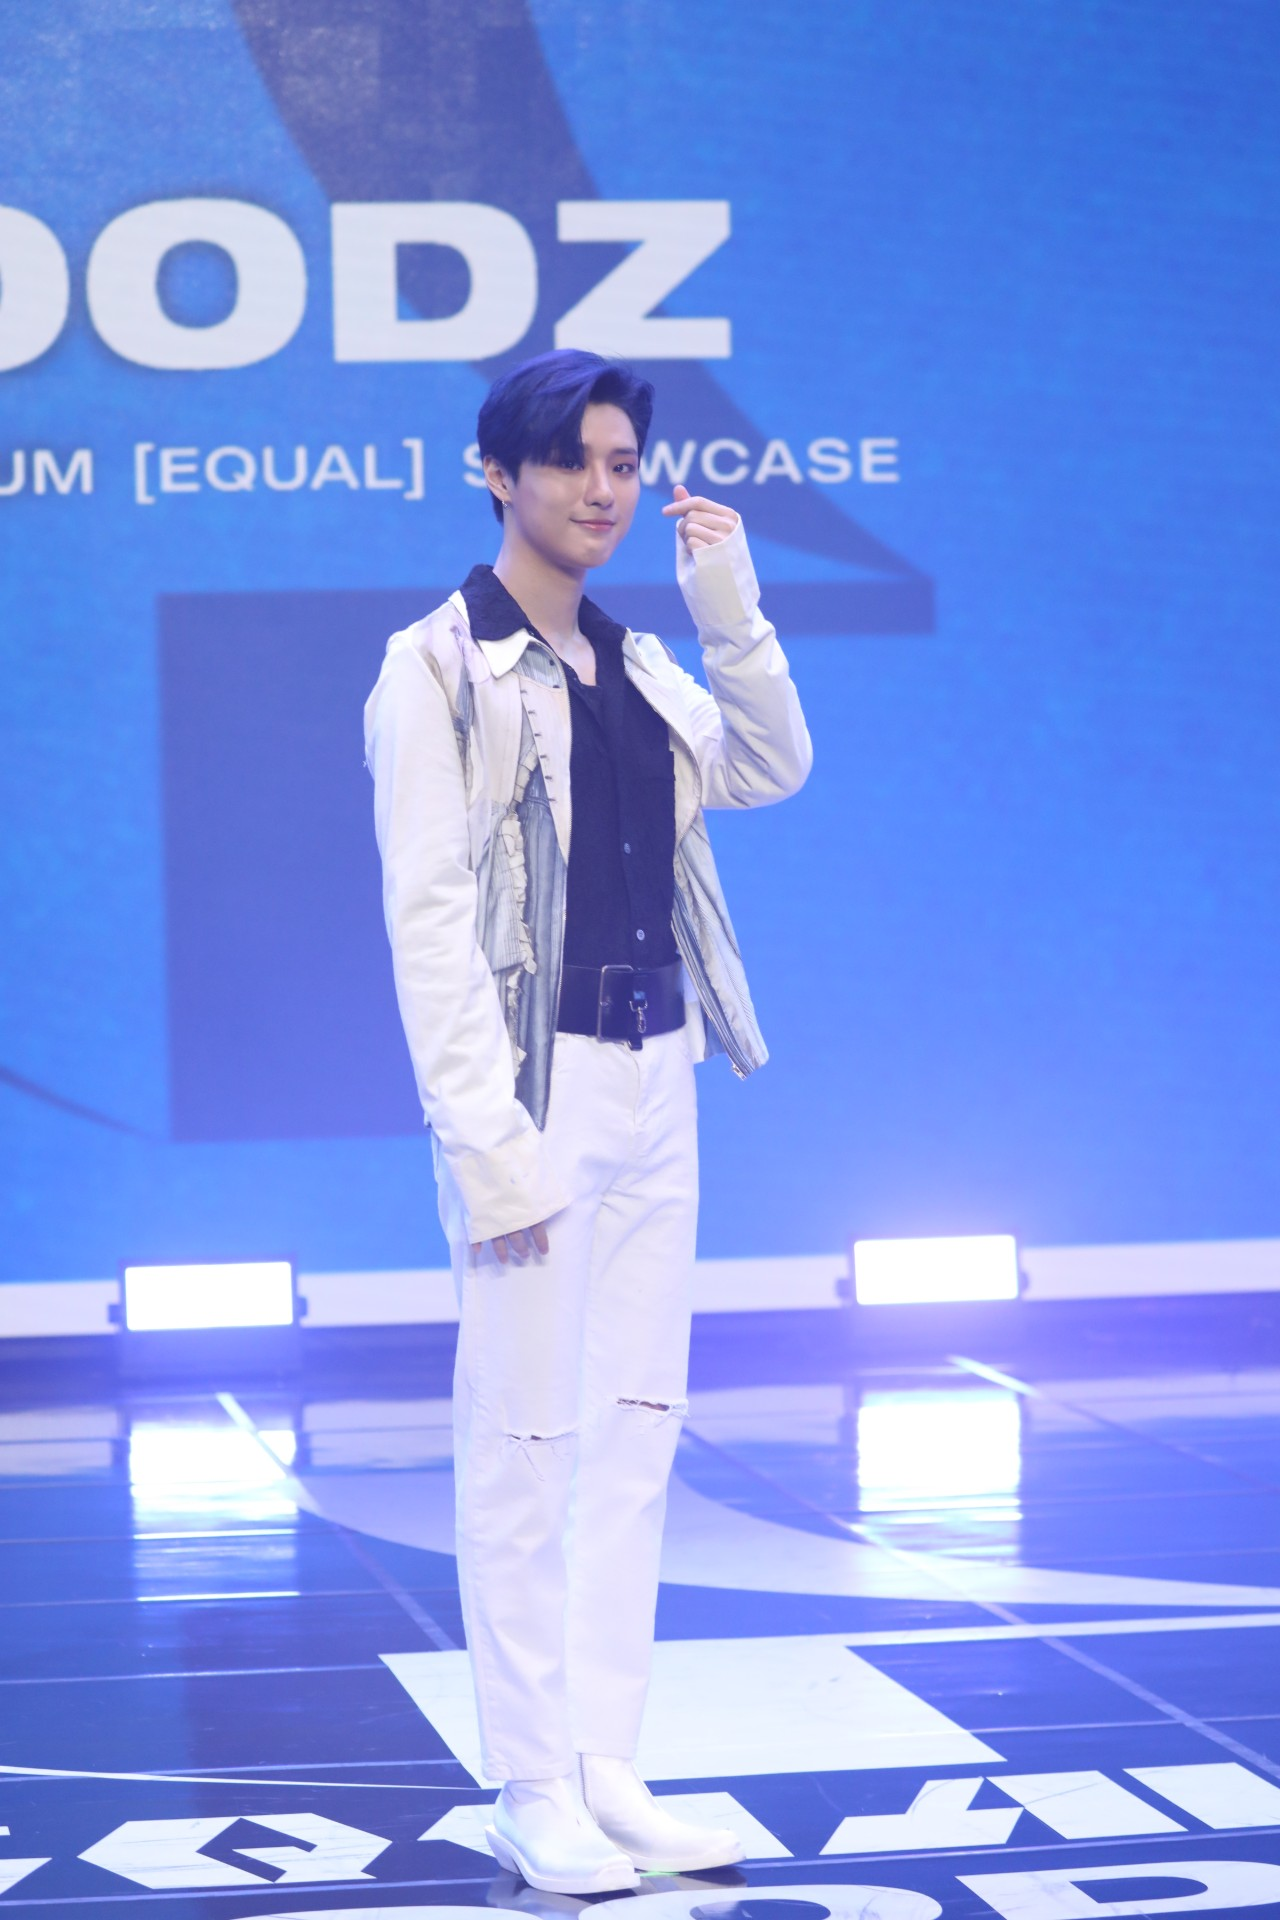 WOODZ (Cho Seungyoun), who held an online media showcase marking the album release of EQUAL at 4:30 PM on the 29th (Photo Credit=Yuehua Entertainment)